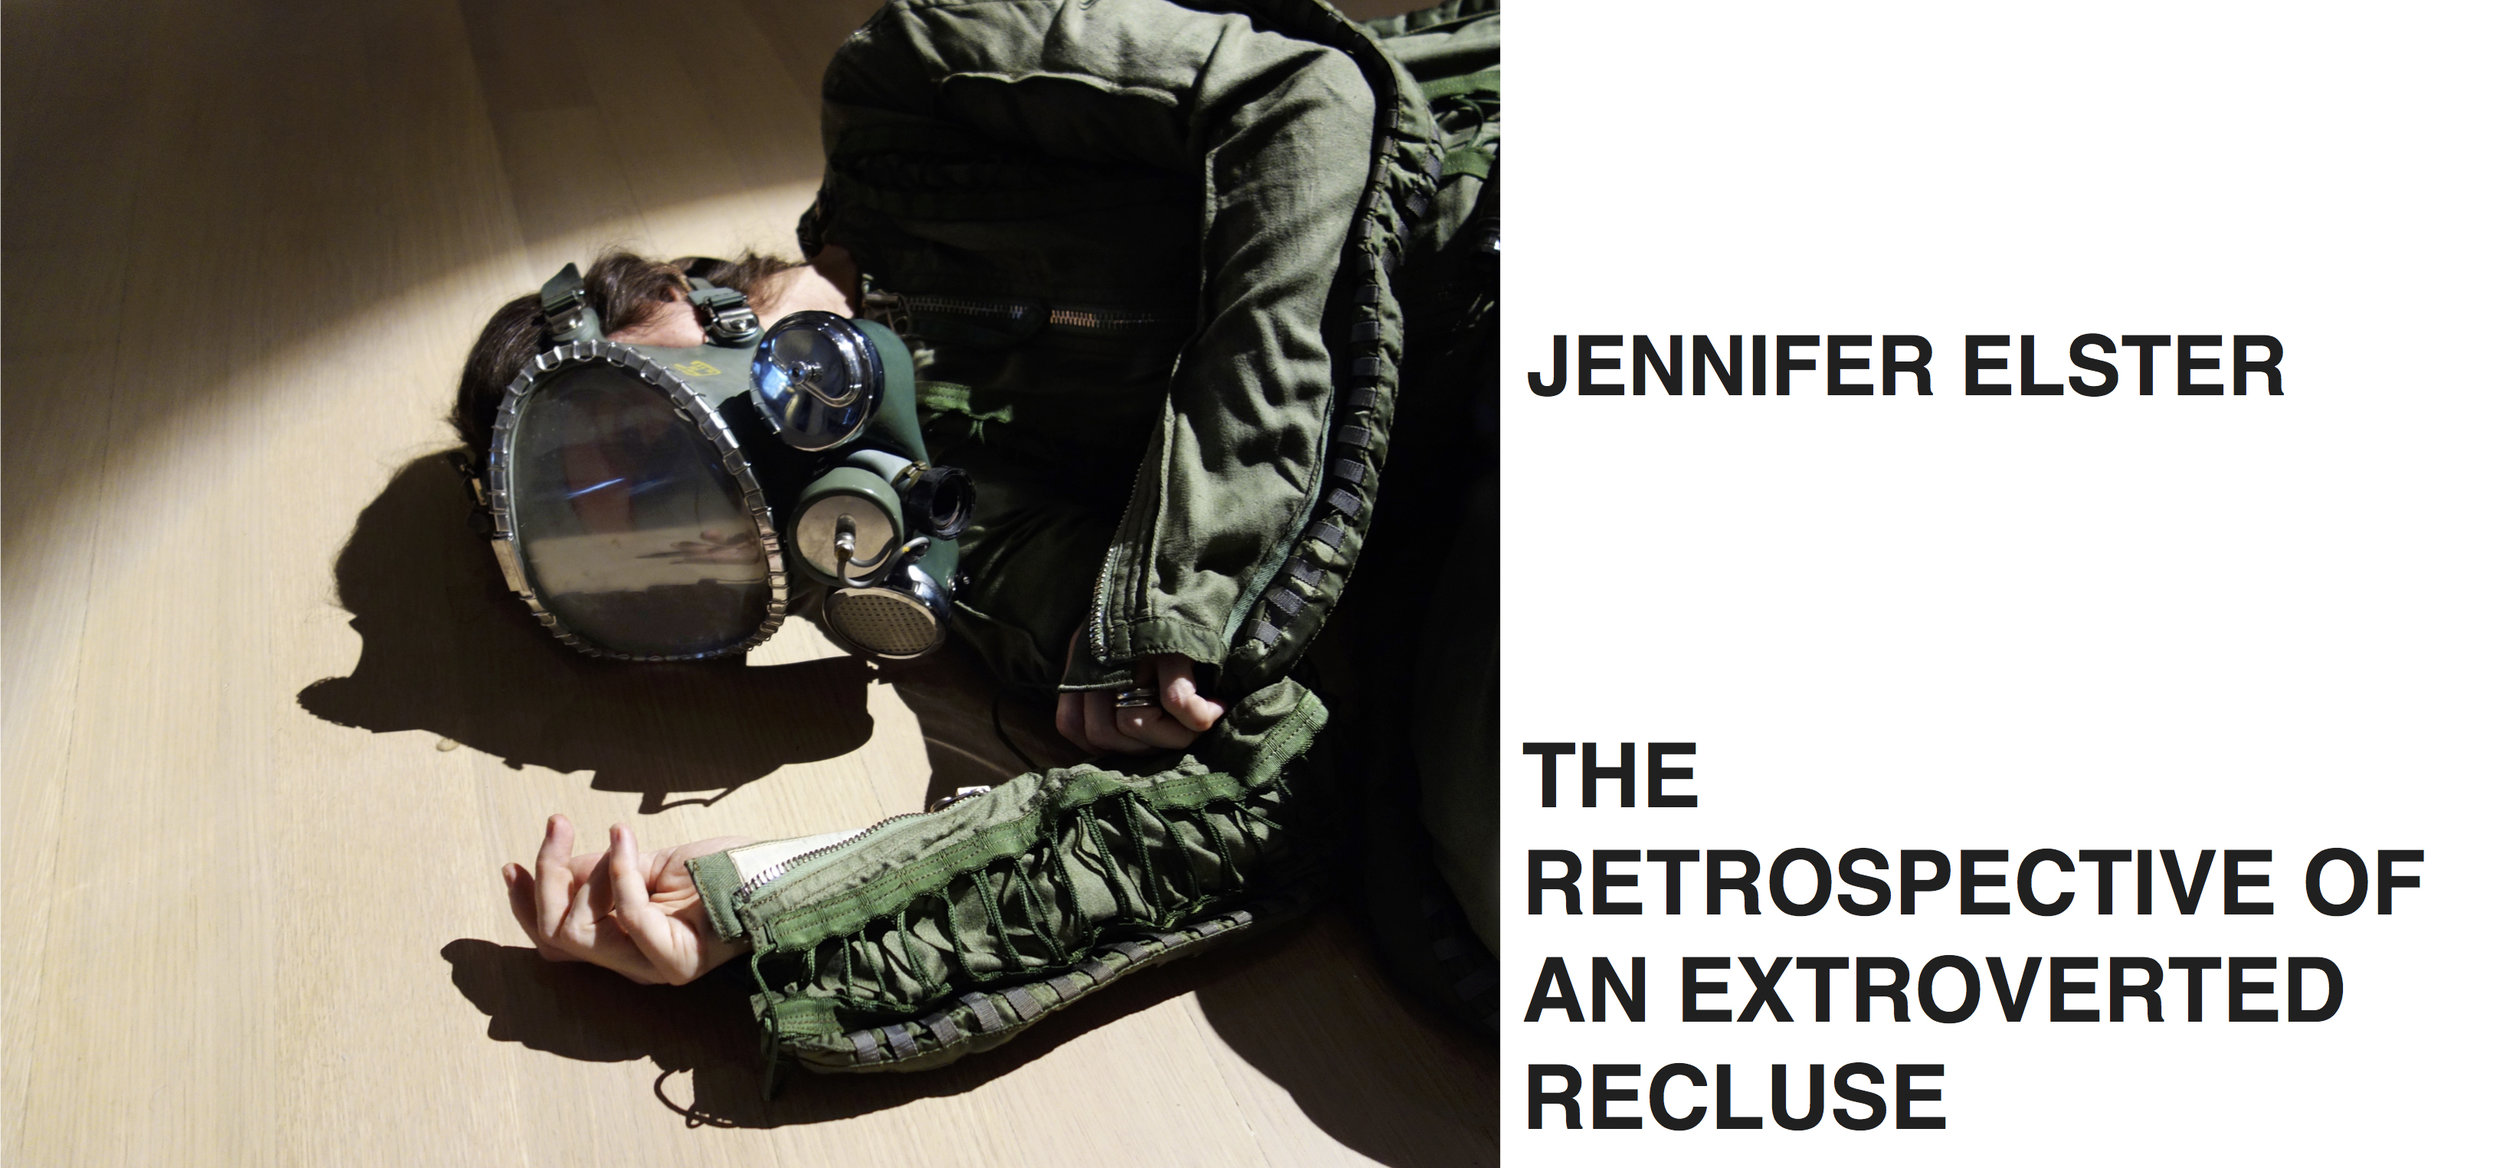 Jennifer Elster - The Retrospective of an Extroverted Recluse